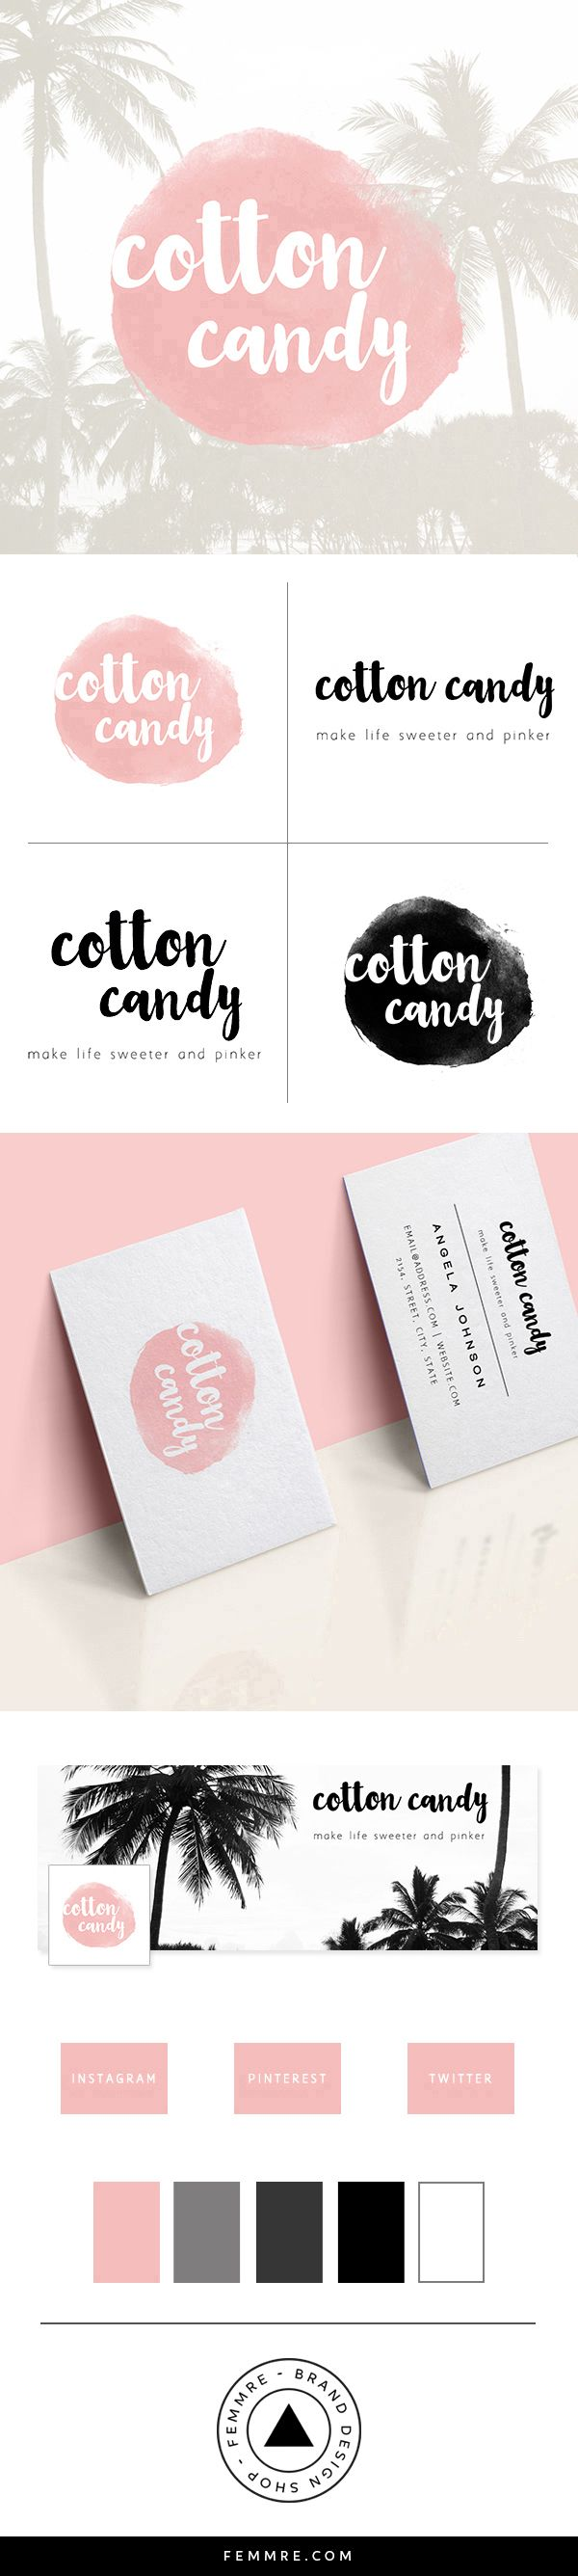 Cotton Candy Premade Brand Launch (sold only once)   FEMMRE - Luxe Brand Design Shop   logo design, brand design, branding, premade brand, premade logo